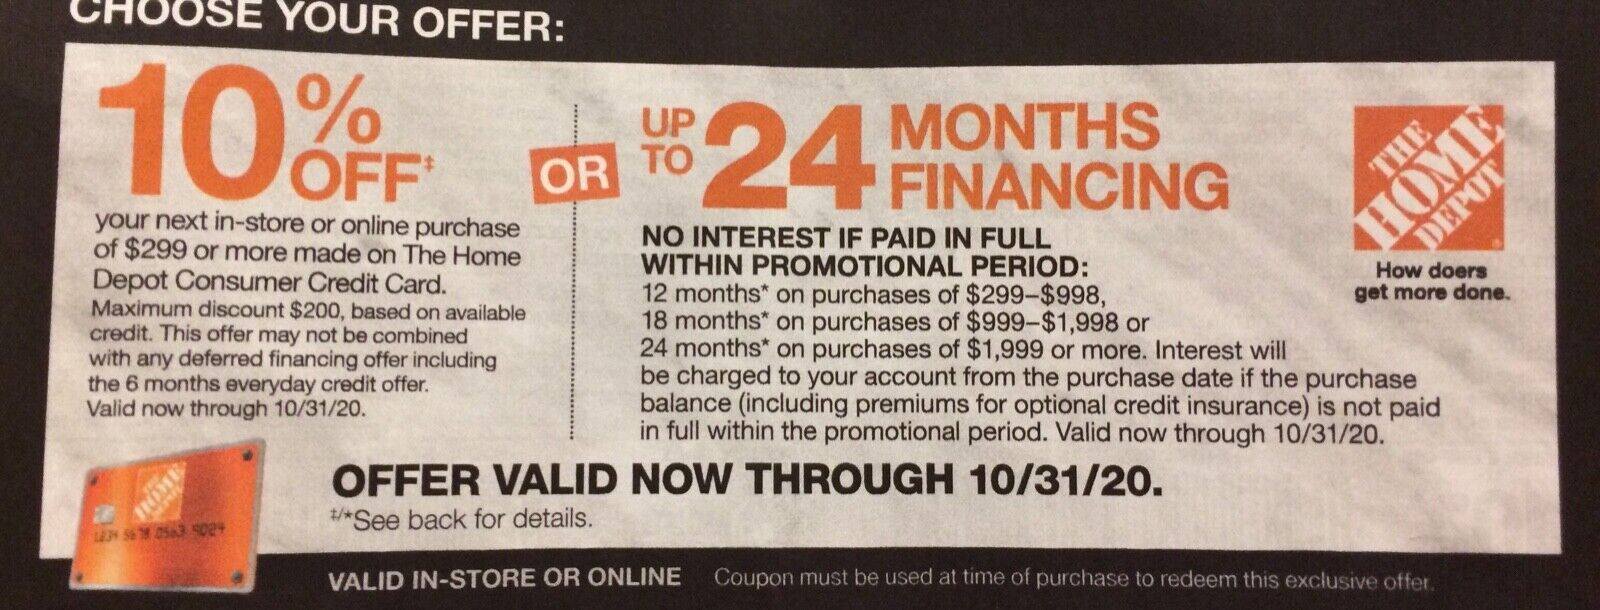 HOME DEPOT 10 Off Purchase Or 24-Month Finance - Certificate 10/31/20  - $20.00